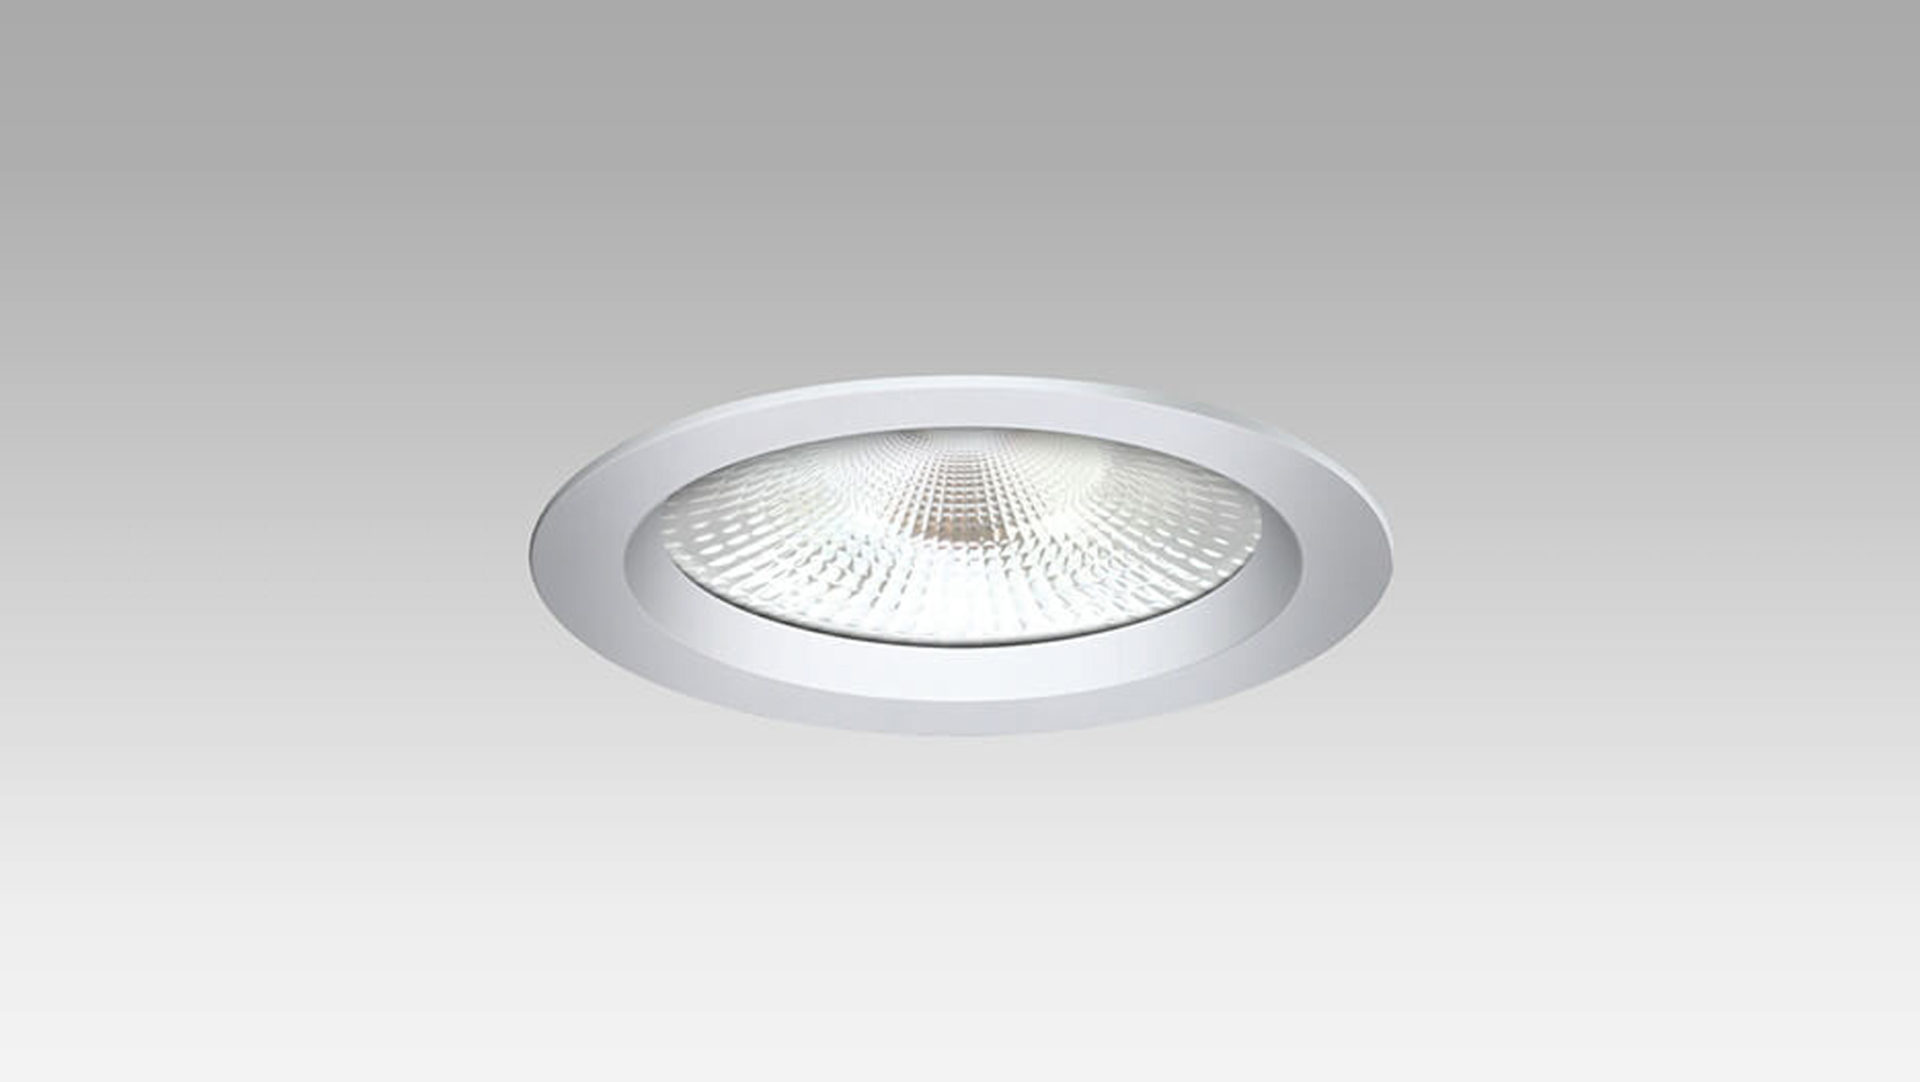 Plafoniere A Led : Plafoniera led incasso powersave solutions